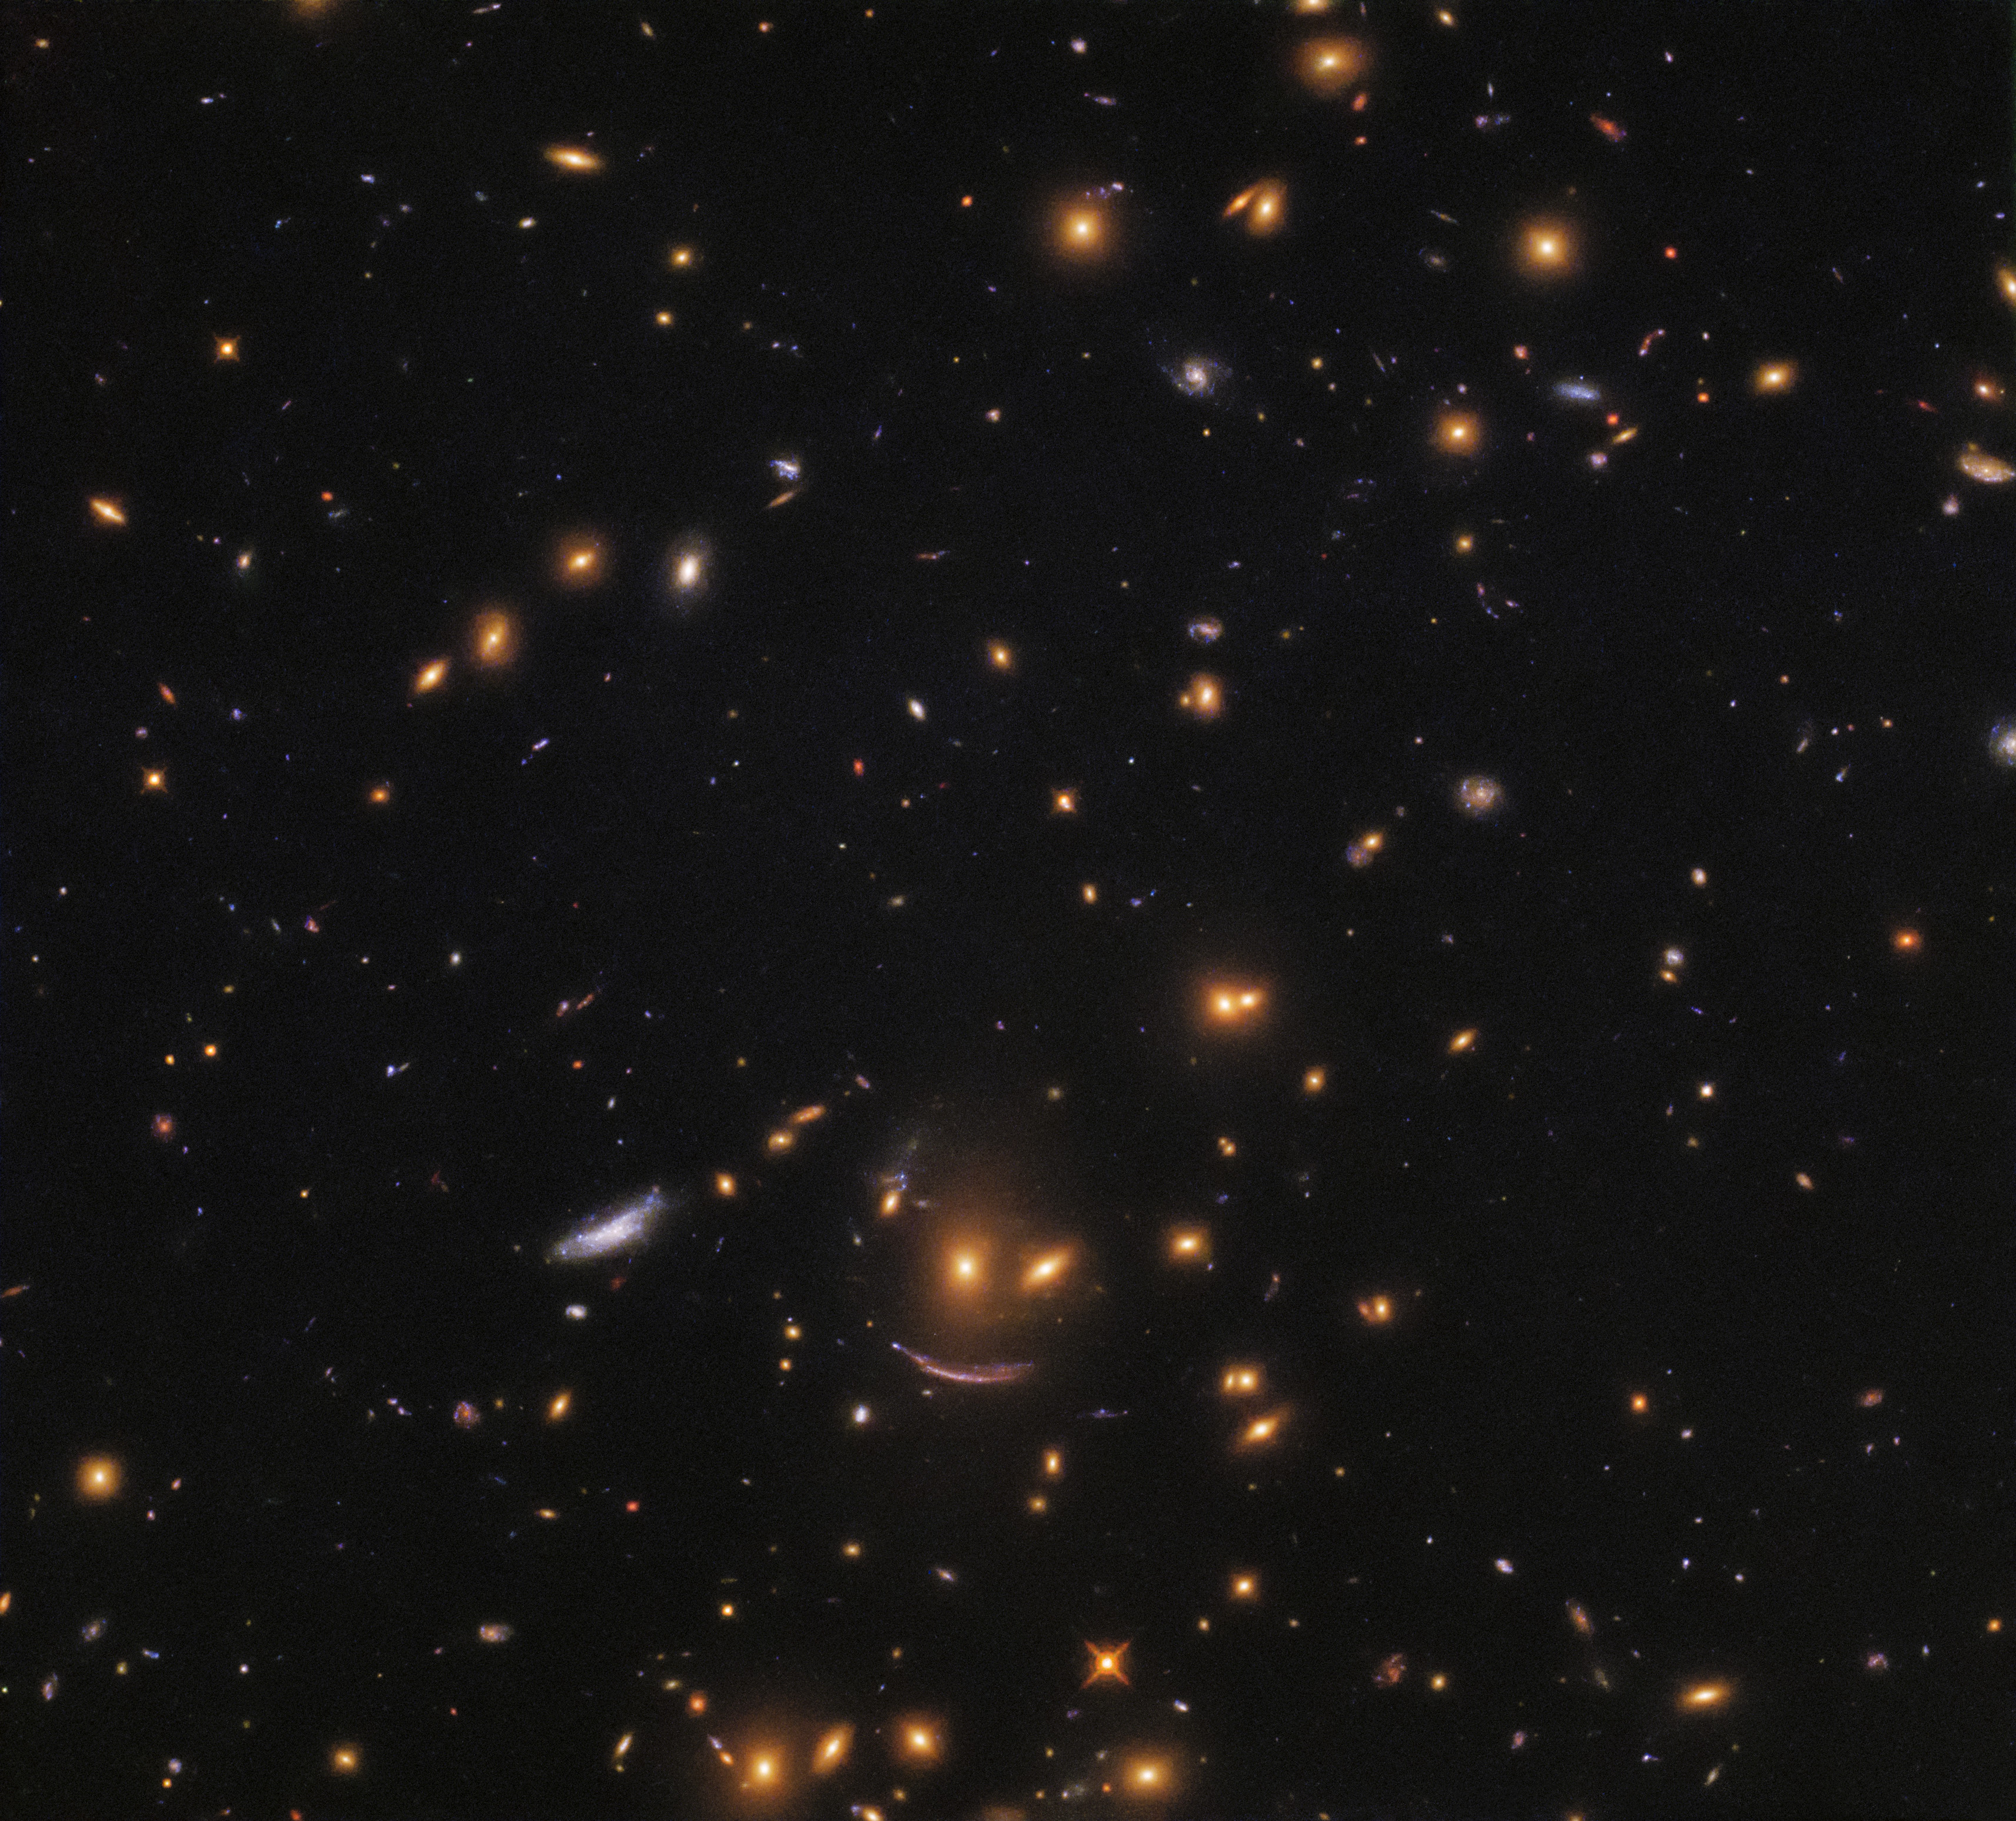 A smiley face is seen in a field of stars amid the black of space.